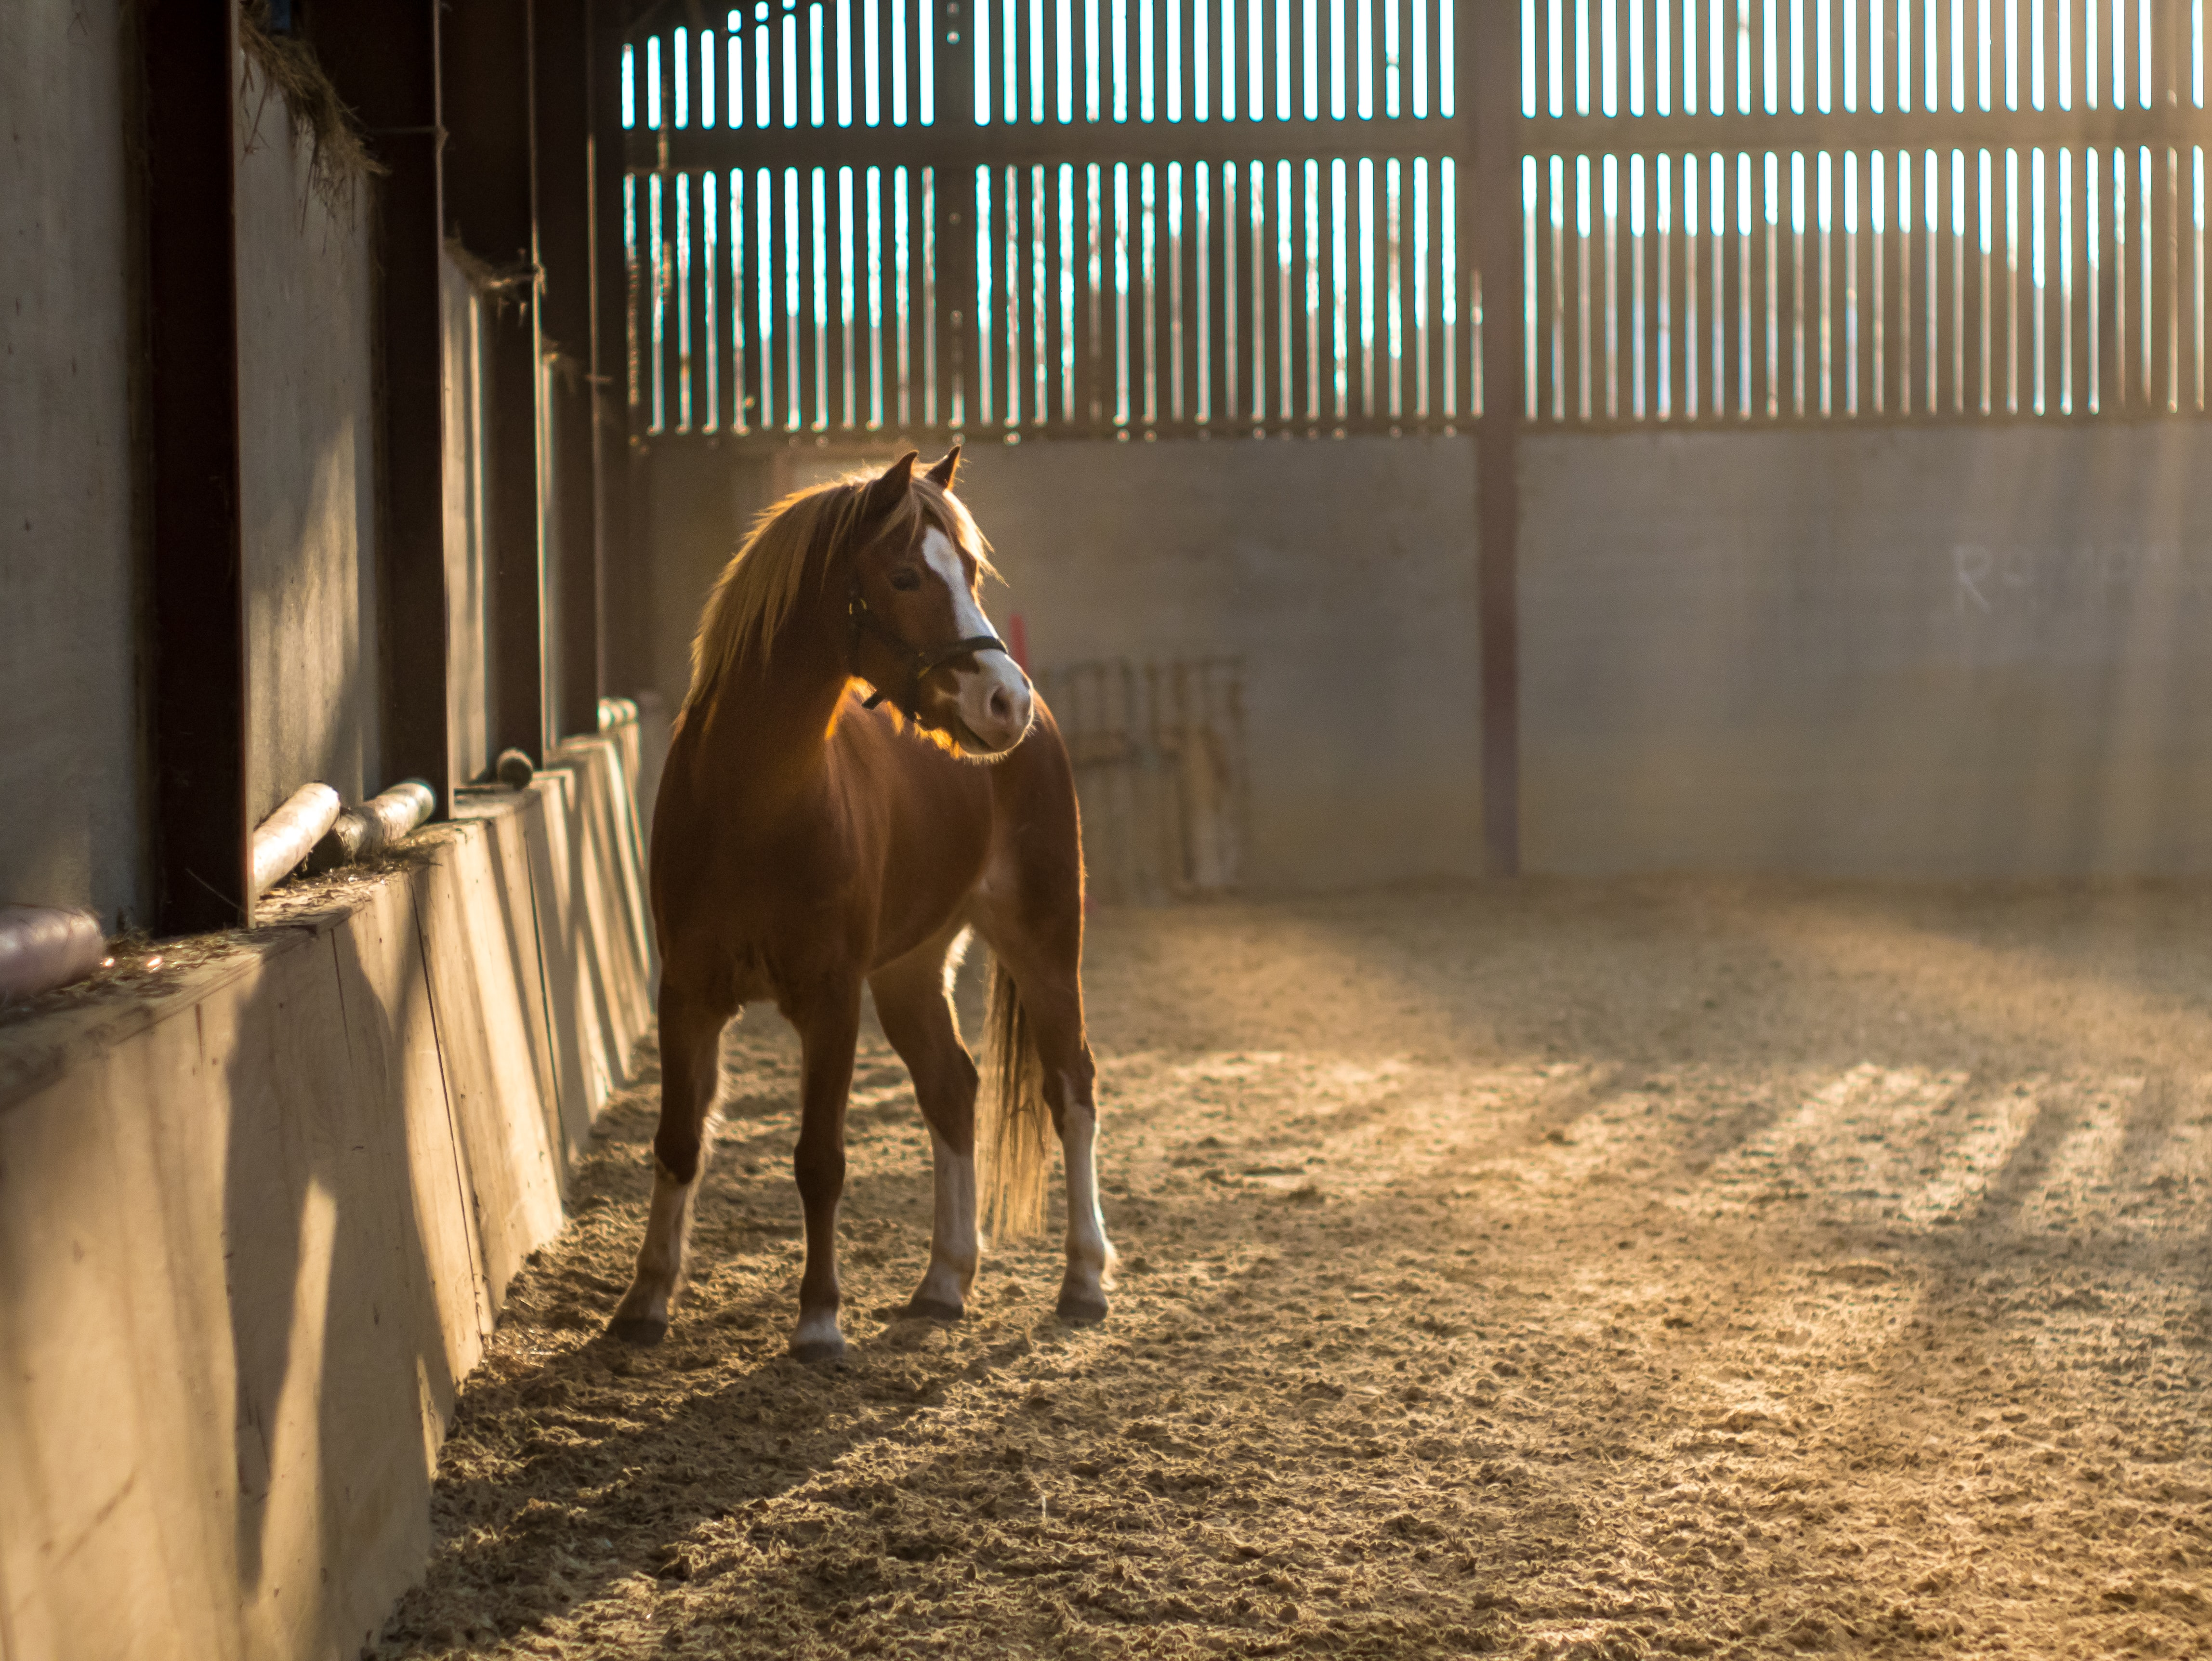 A foal with a bridle in a barn with sun shining through gaps in the wooden wall